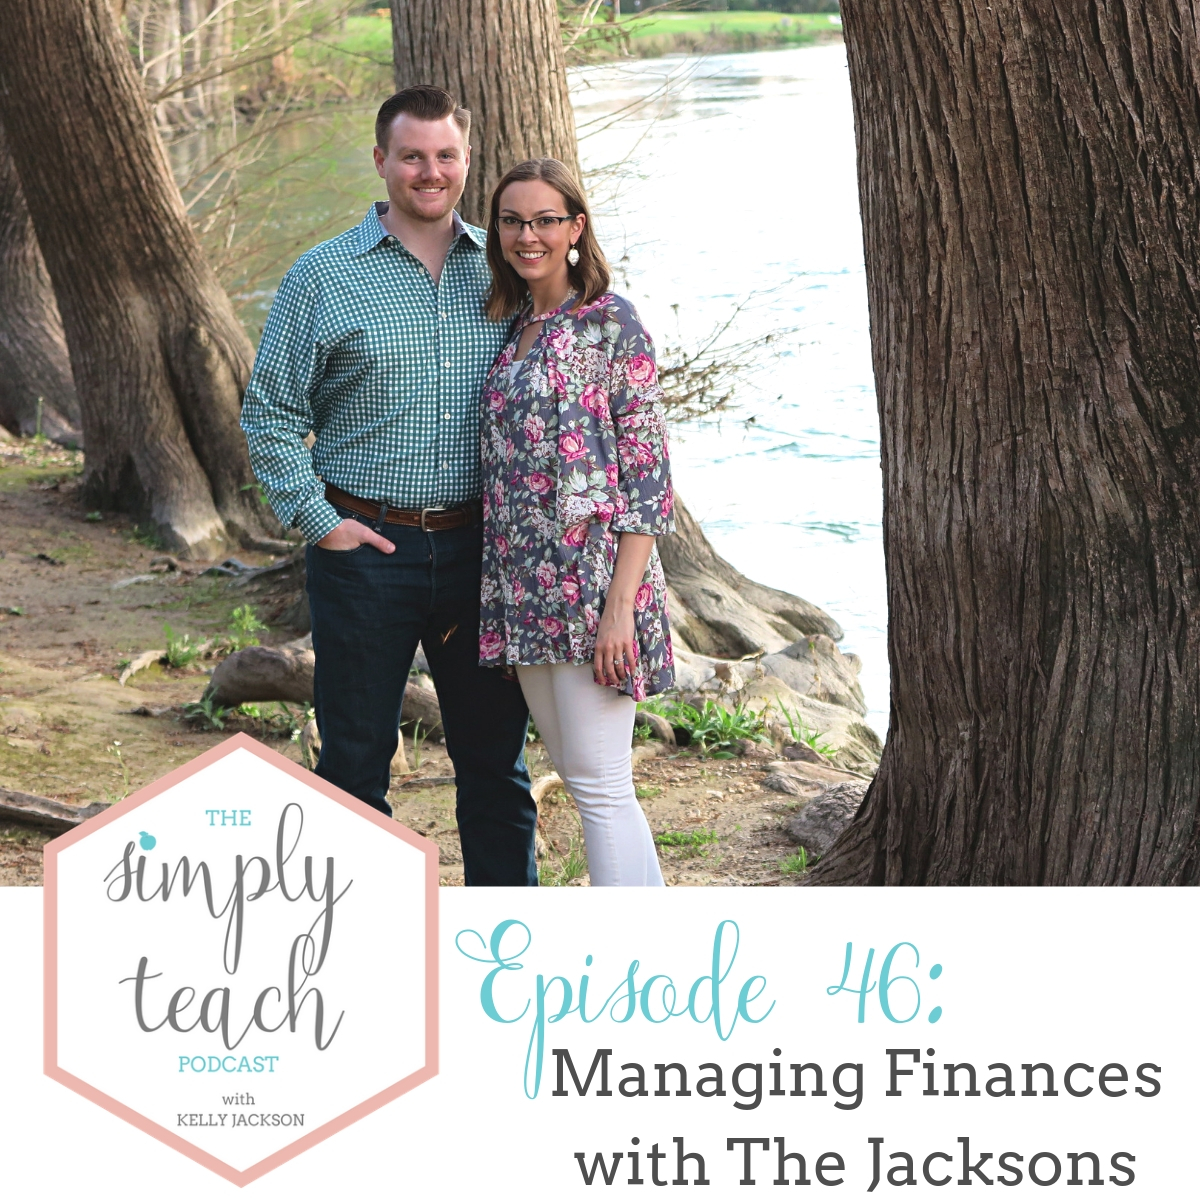 """A couple smiling at camera. Text overlay: """"Simply Teach Podcast. Episode 46- Managing Finances with The Jacksons"""